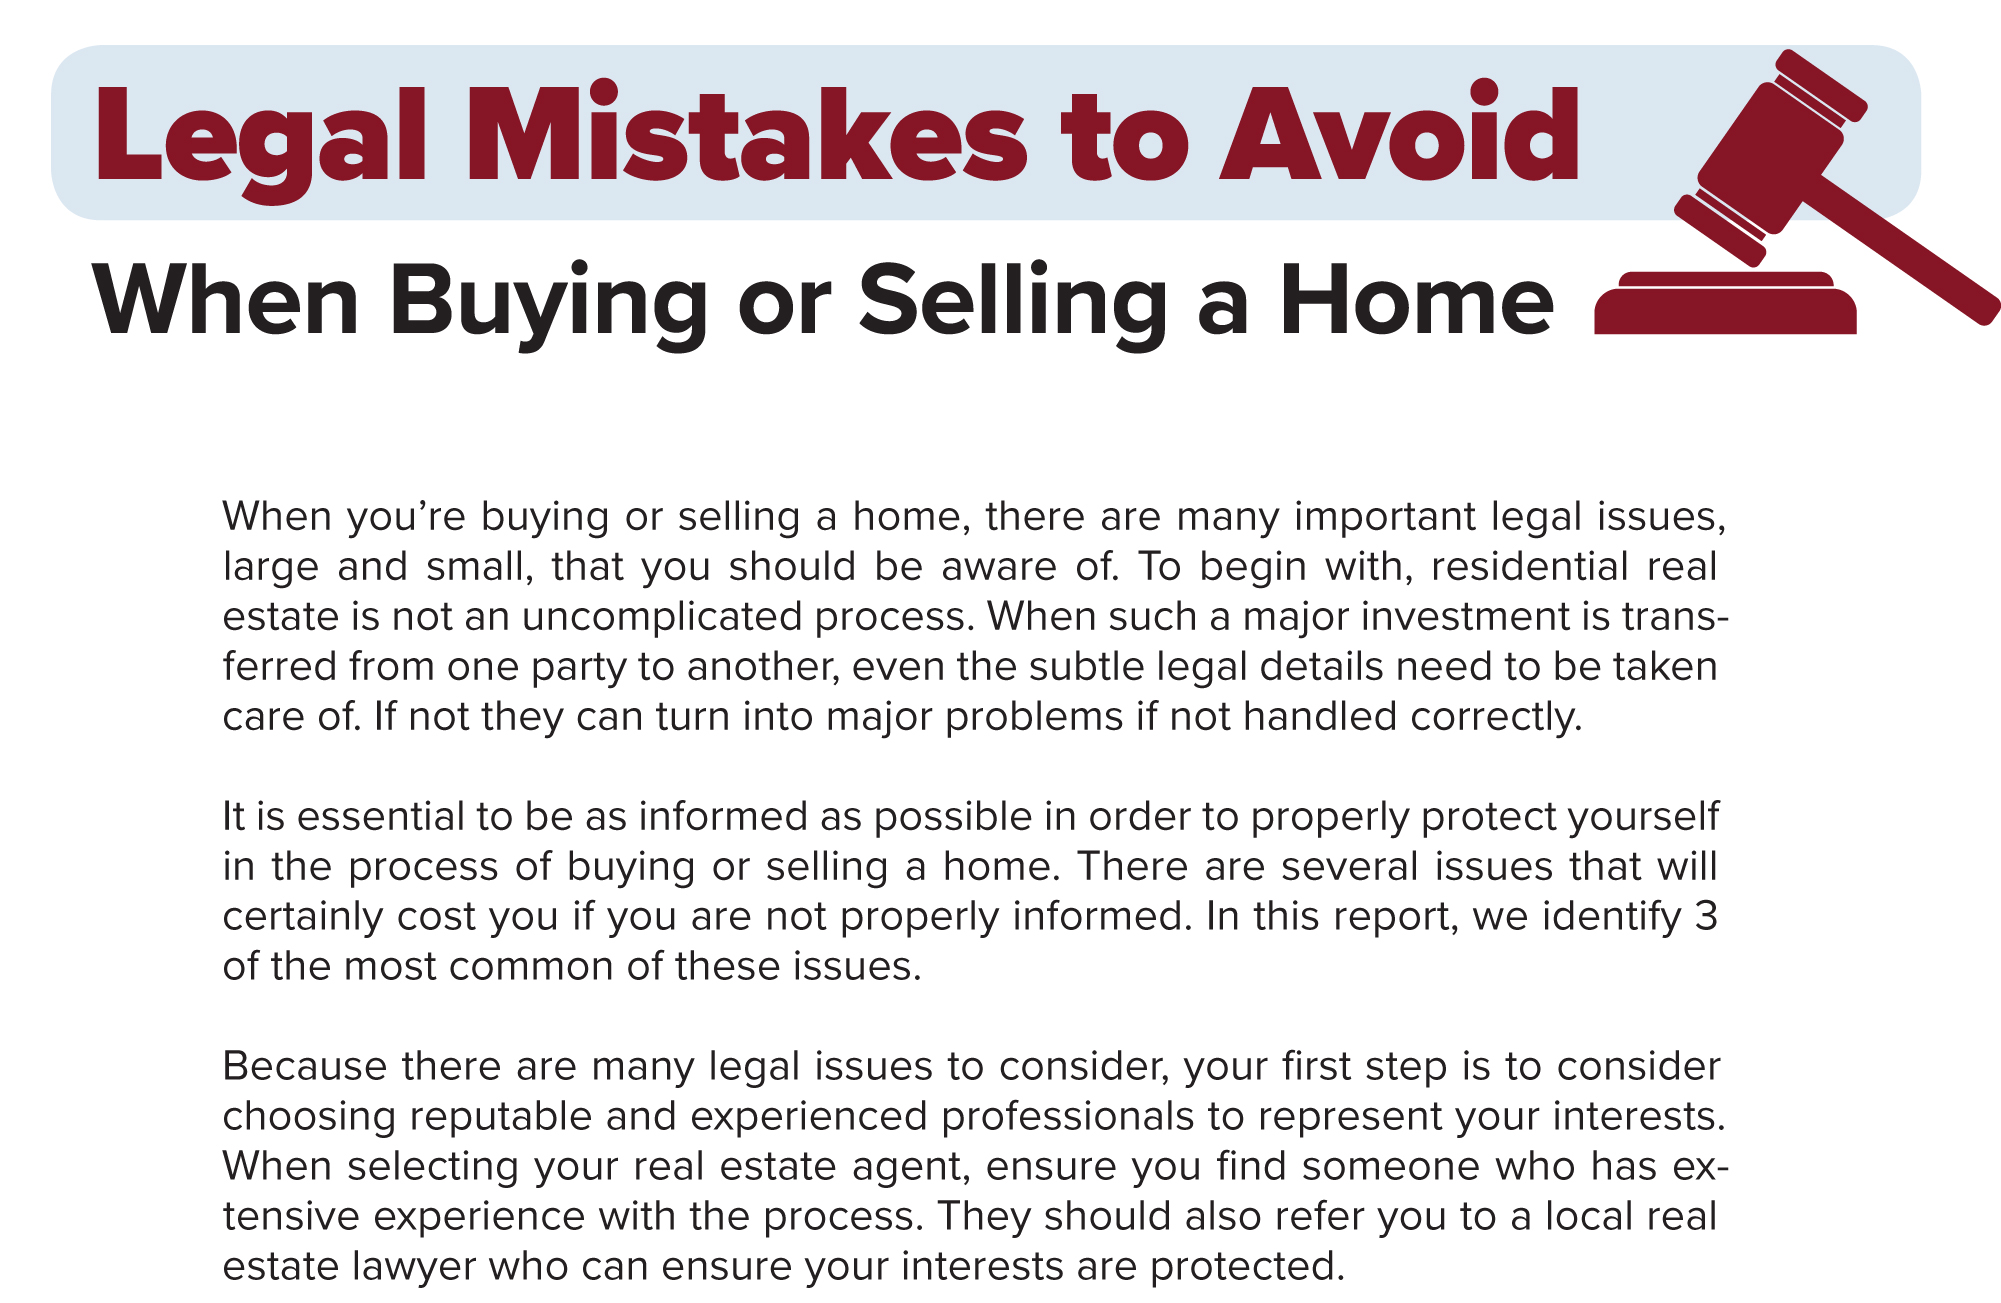 Legal mistakes to avoid-1.jpg